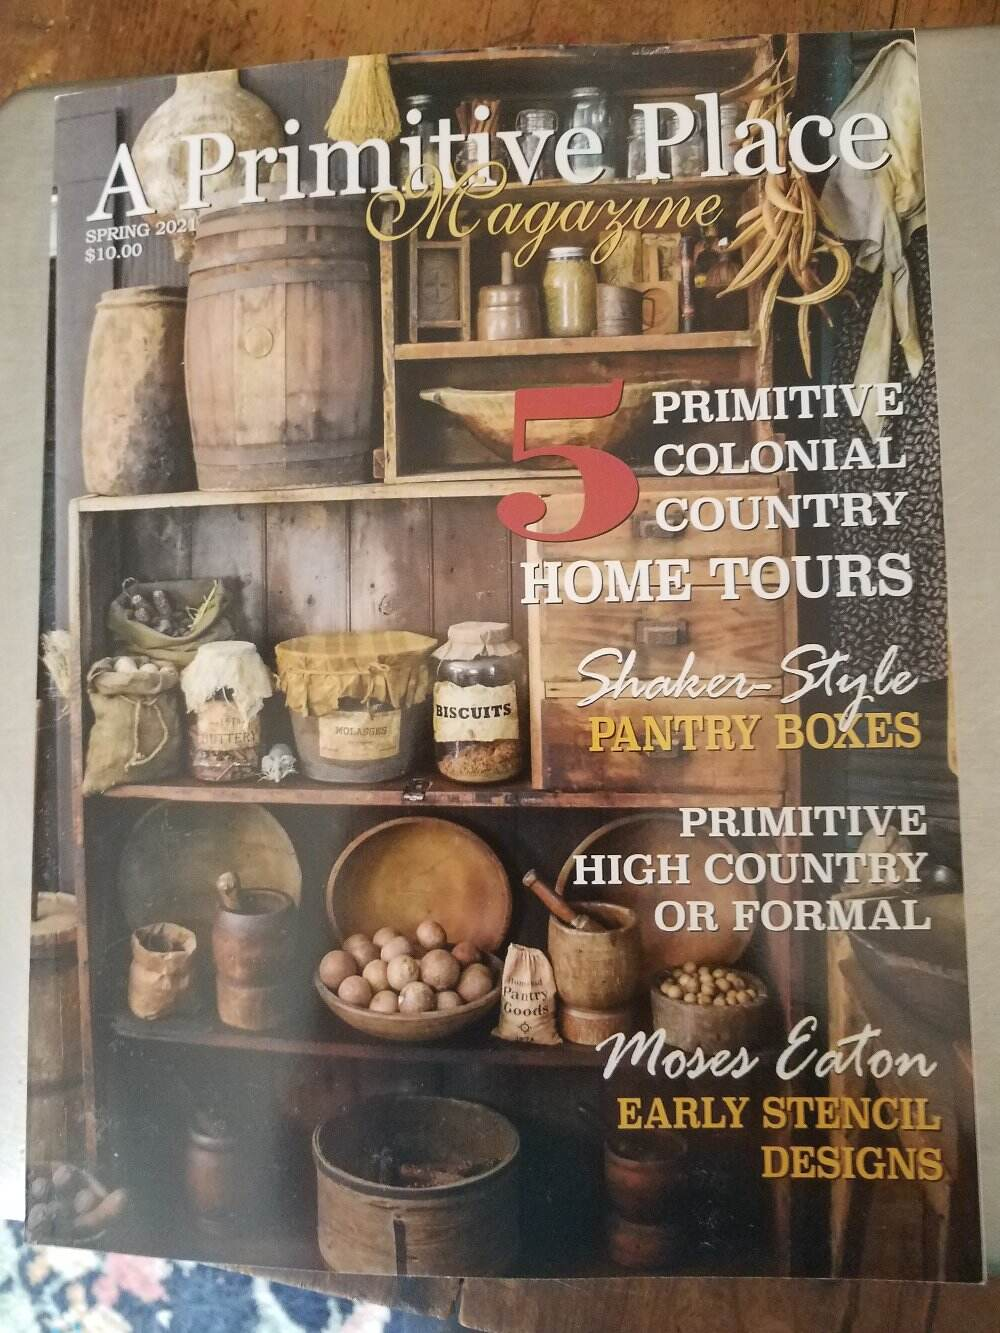 A PRIMITIVE PLACE & COUNTRY JOURNAL MAGAZINE Spring 2021